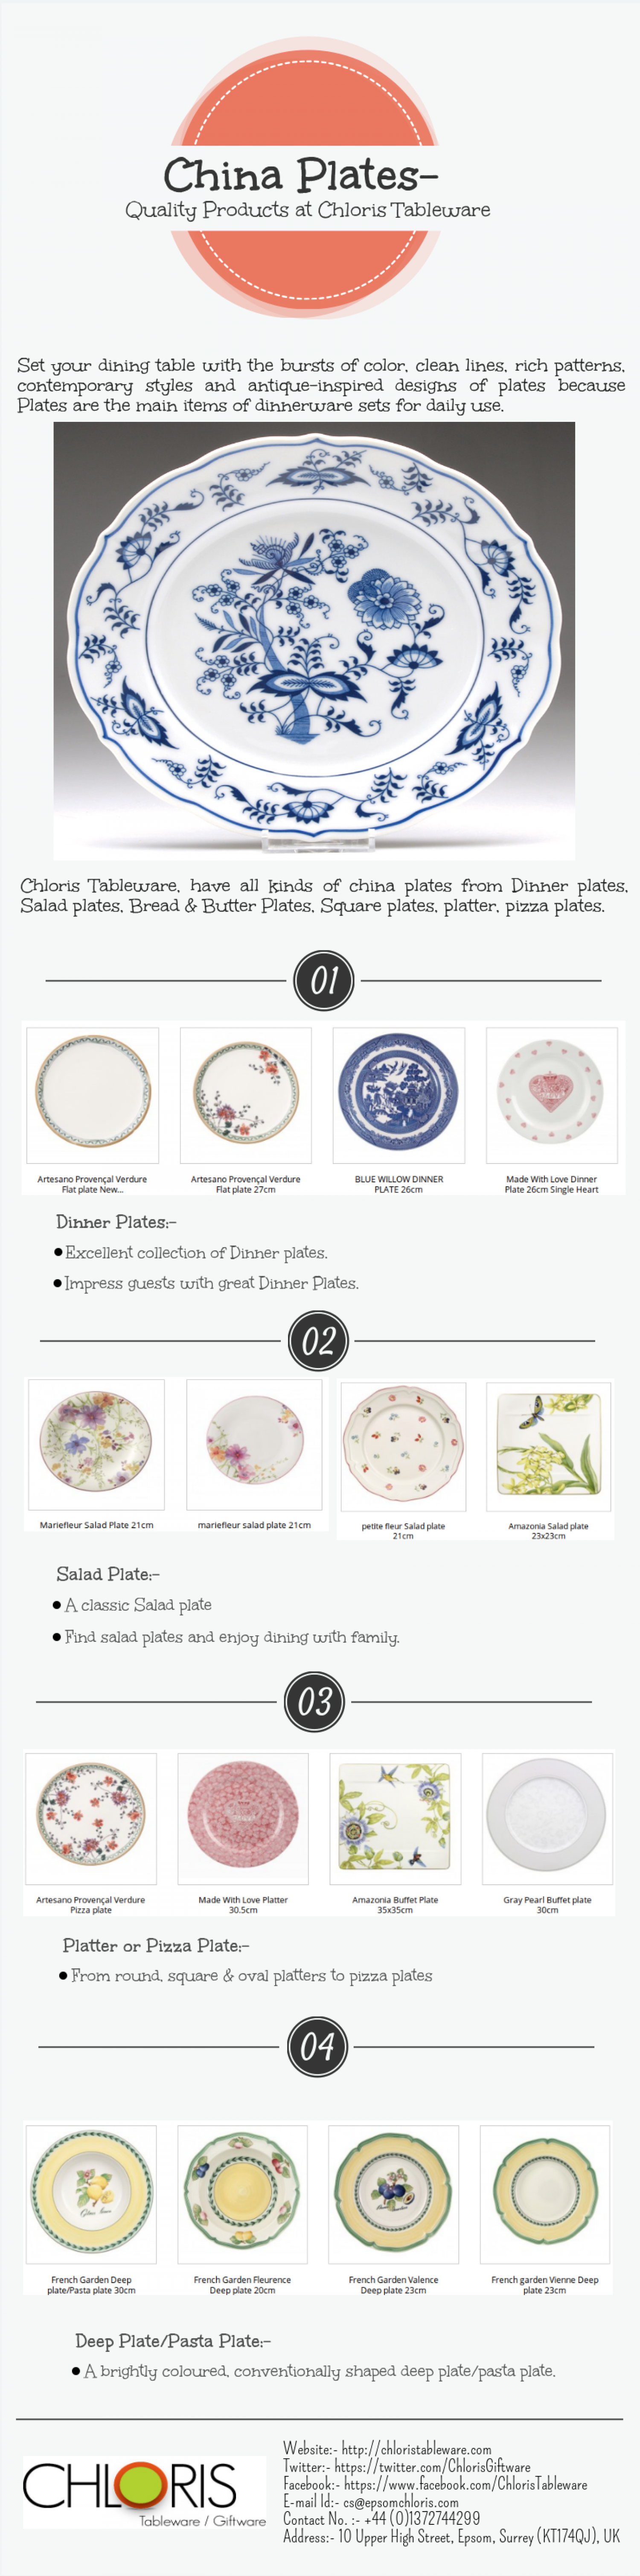 Quality China Dinnerware China Plates Quality Products At Chloris Tableware Cedae